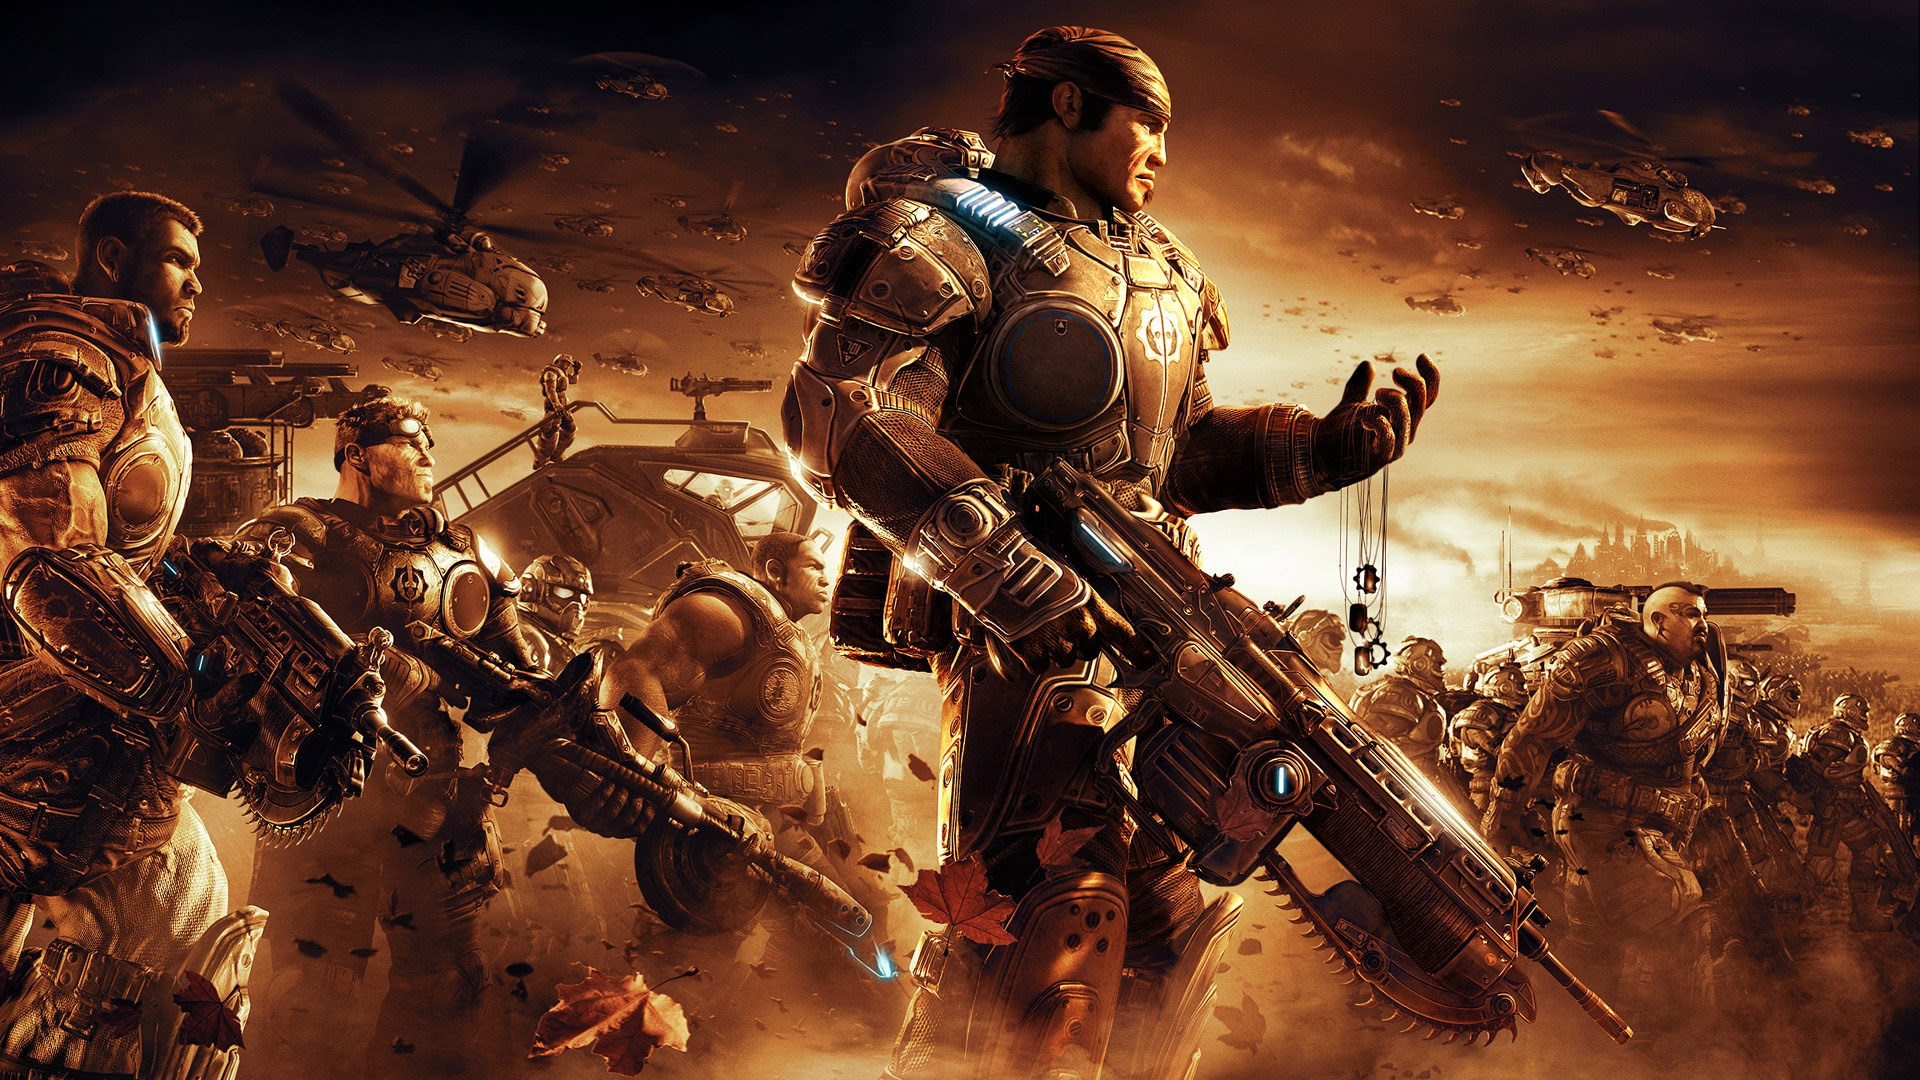 Gears of War 2 desktop wallpaper 1920x1080